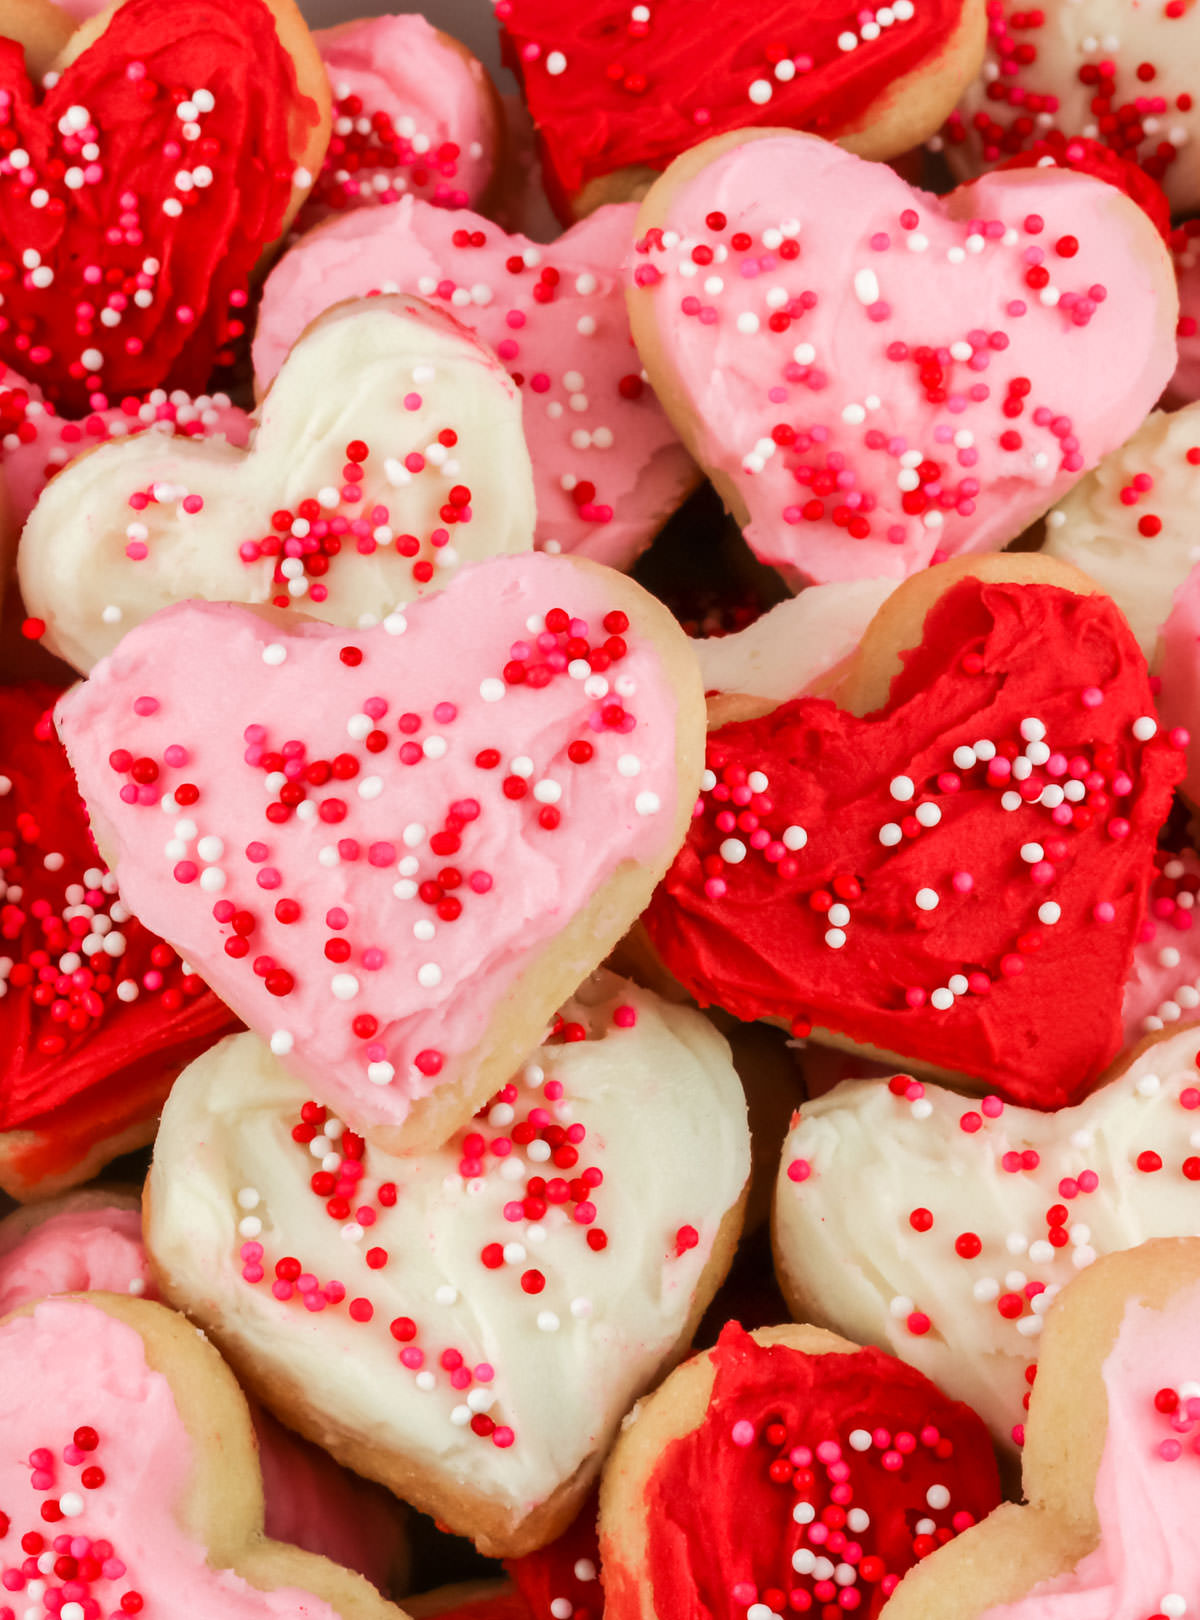 A closeup on a stack of red, white and pink heart-shaped Valentine's Frosted Sugar Cookies.